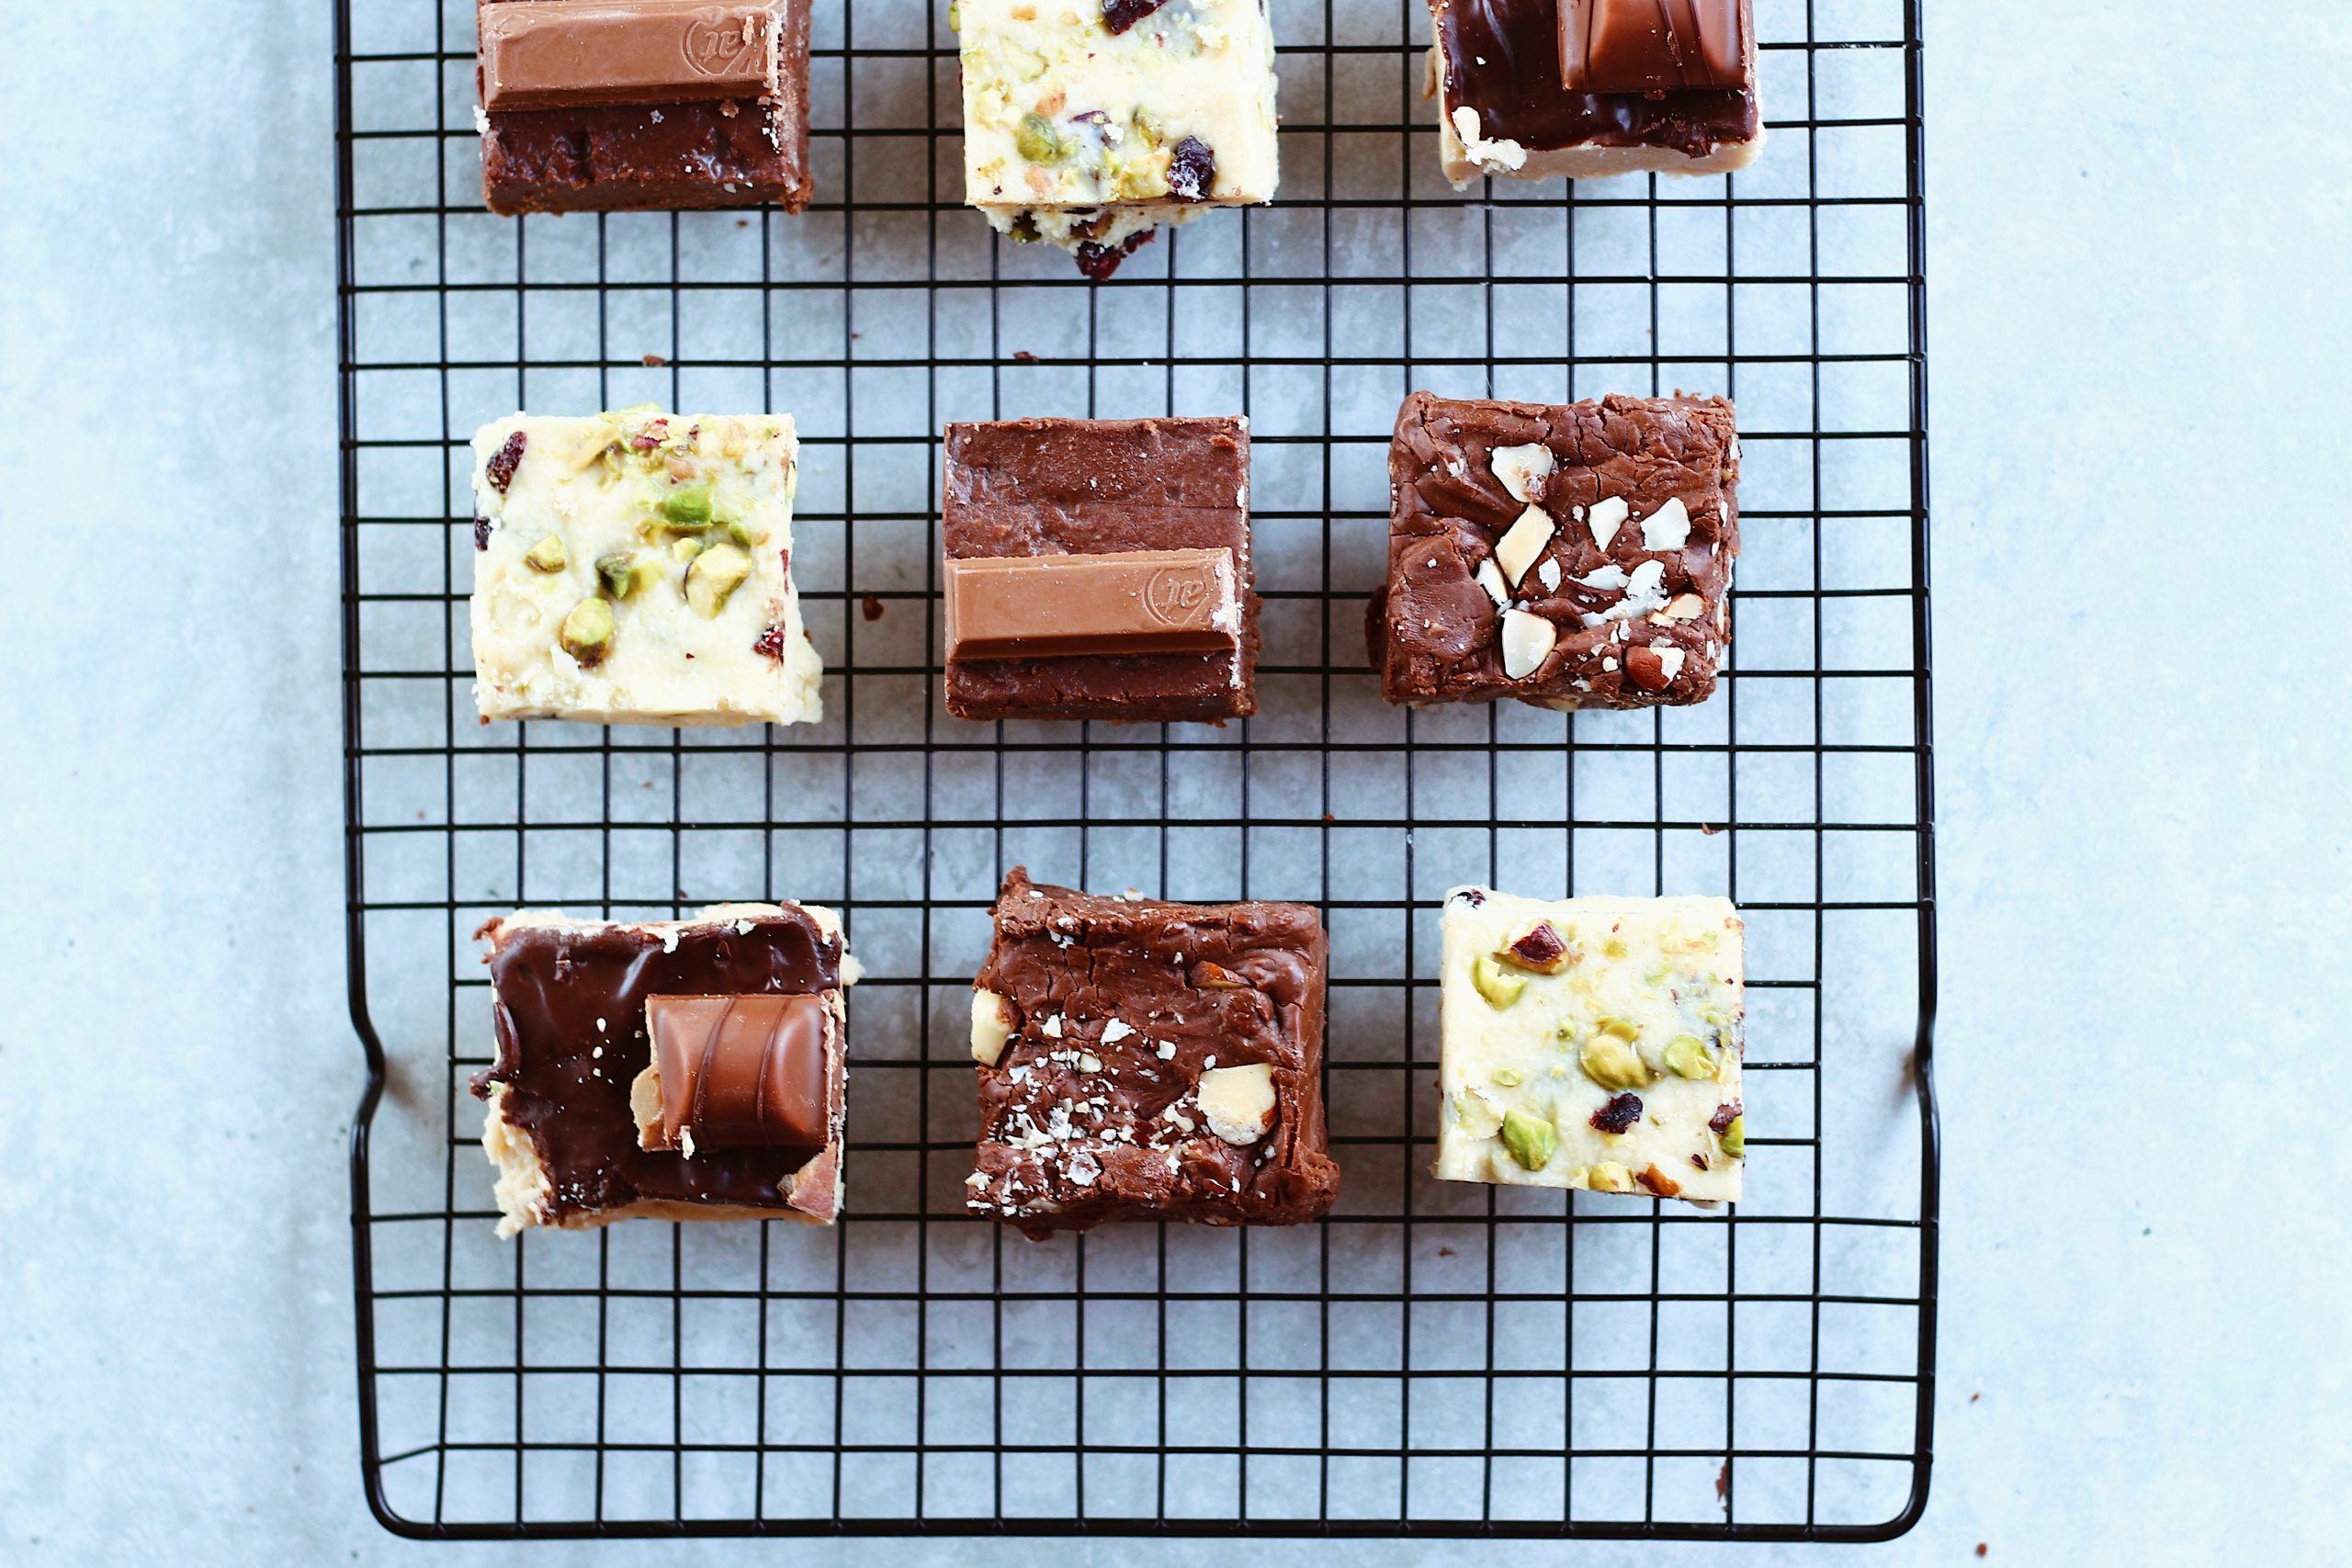 Different chocolate cakes